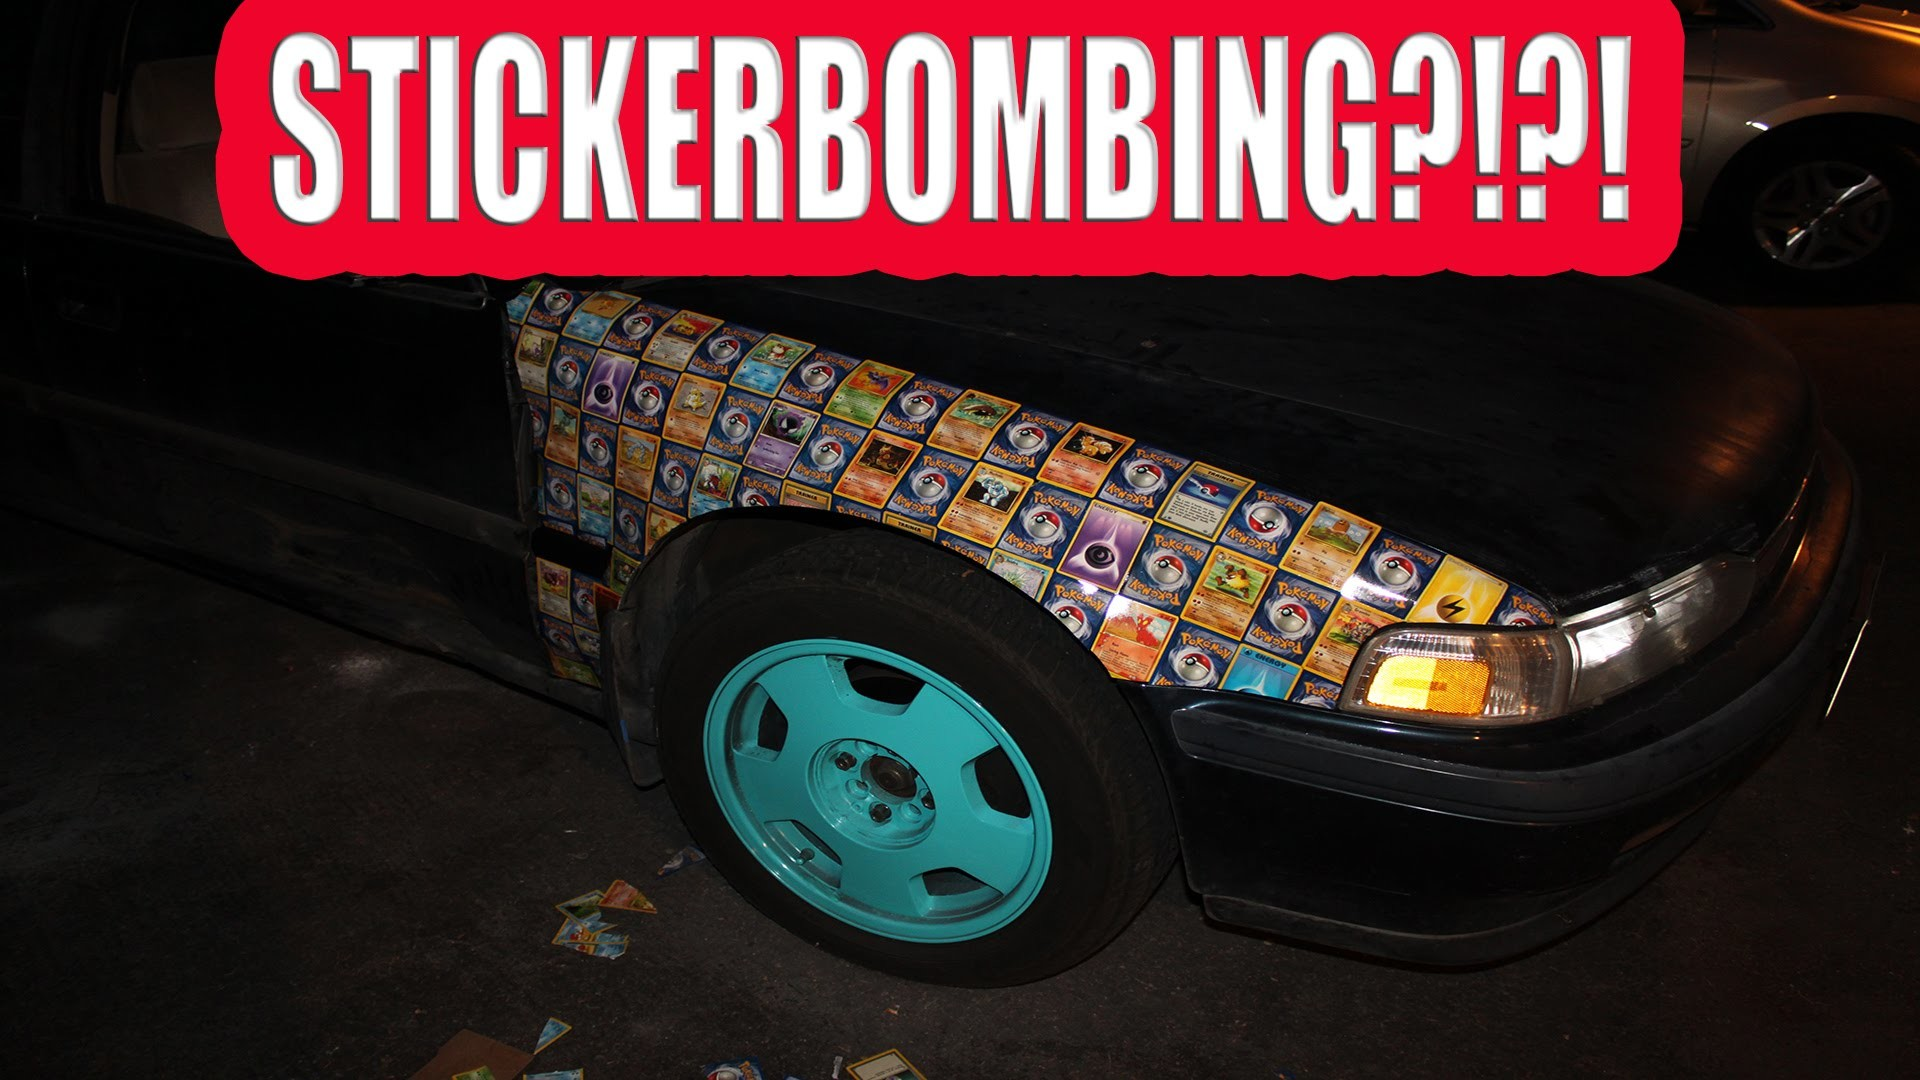 Jdm Sticker Bomb Wallpaper 45 Images